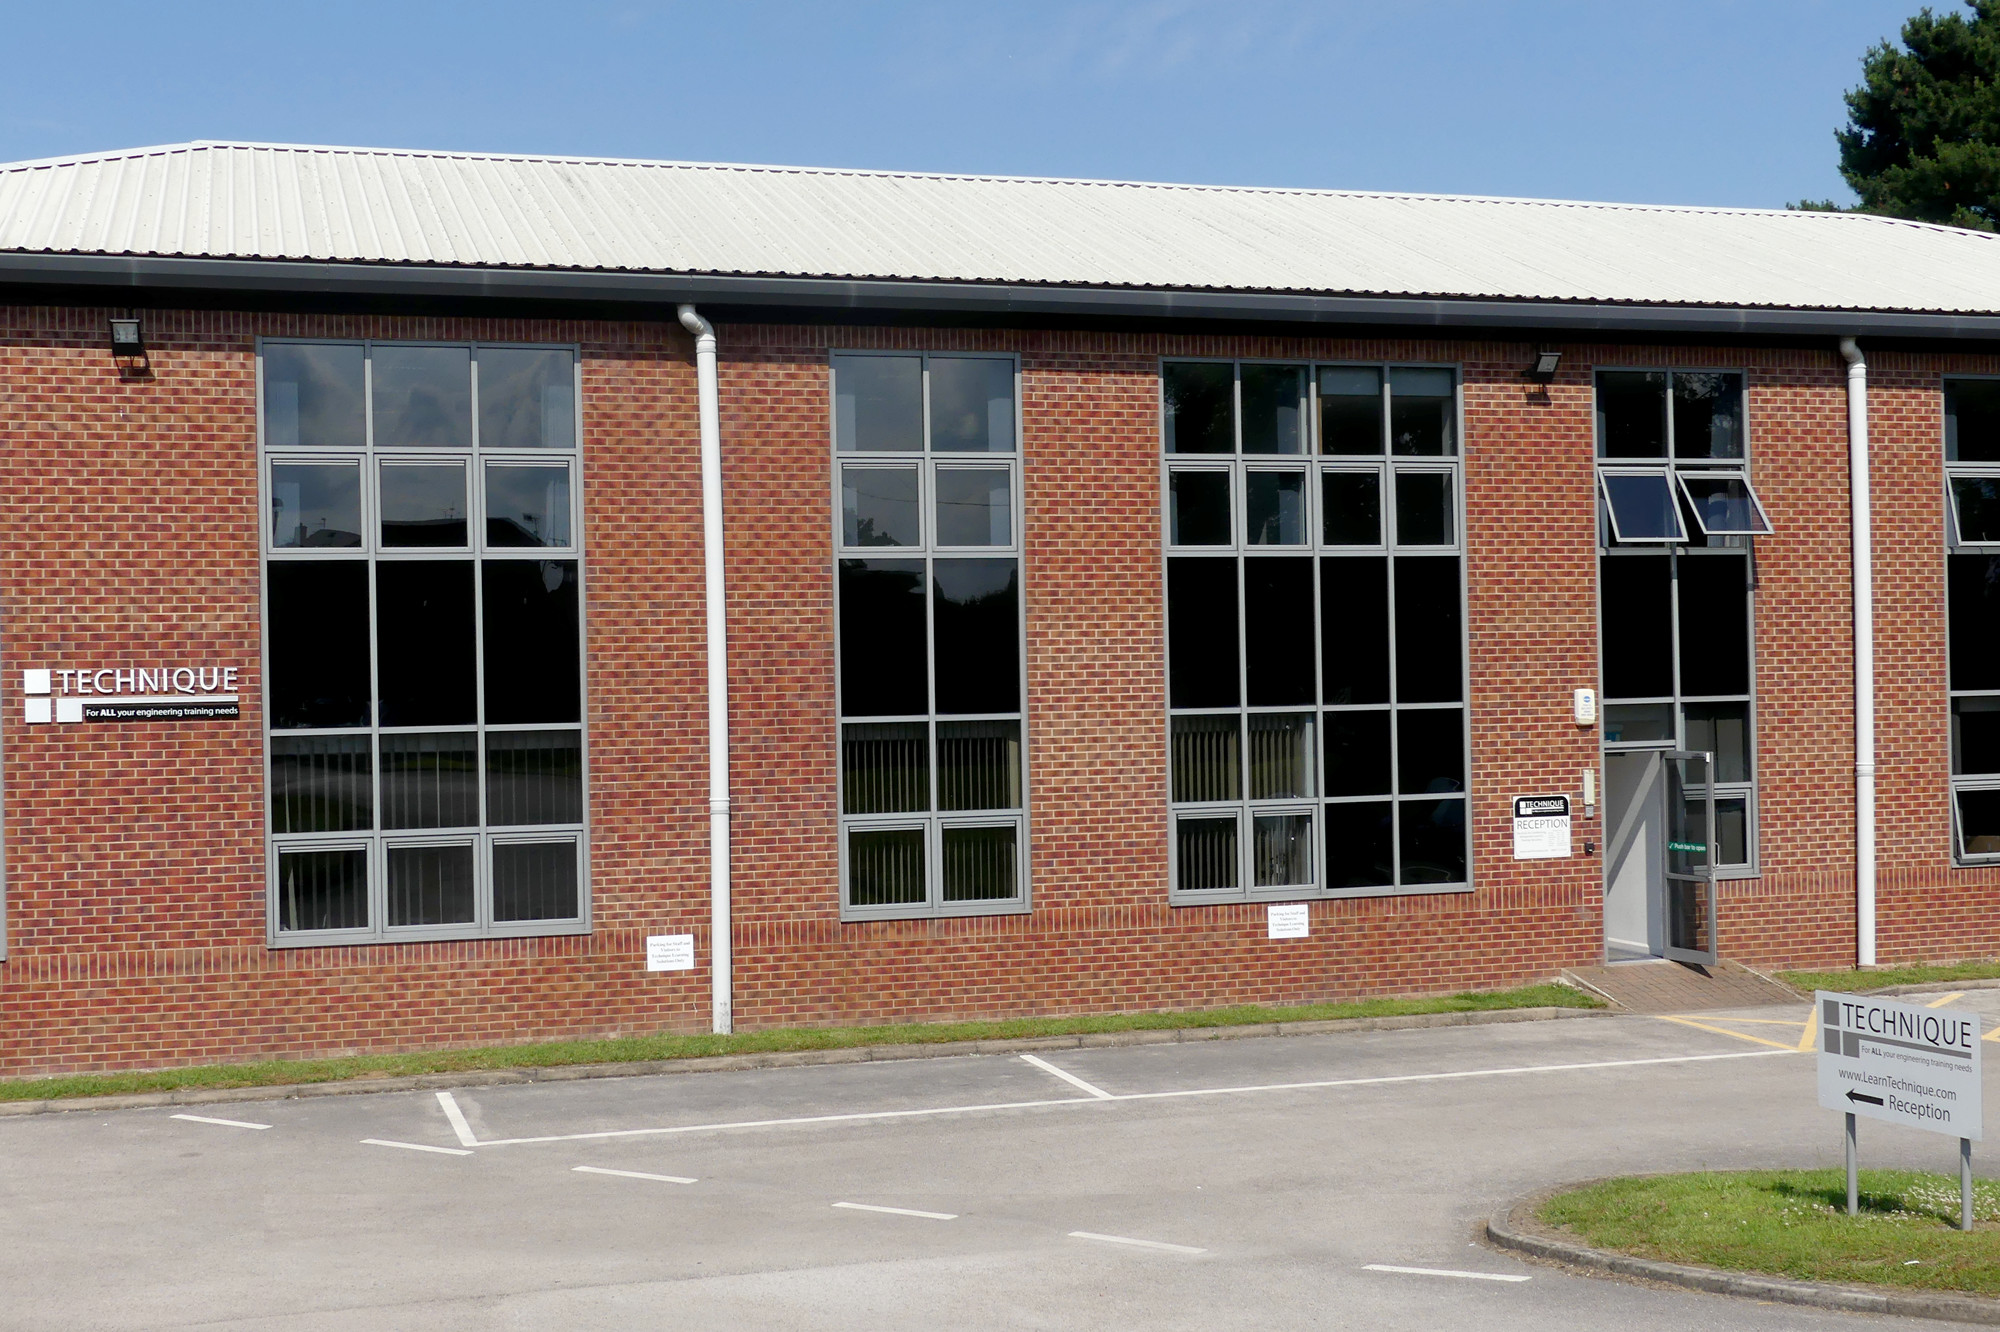 Technique Head Office at Mill Lane, Wingerworth